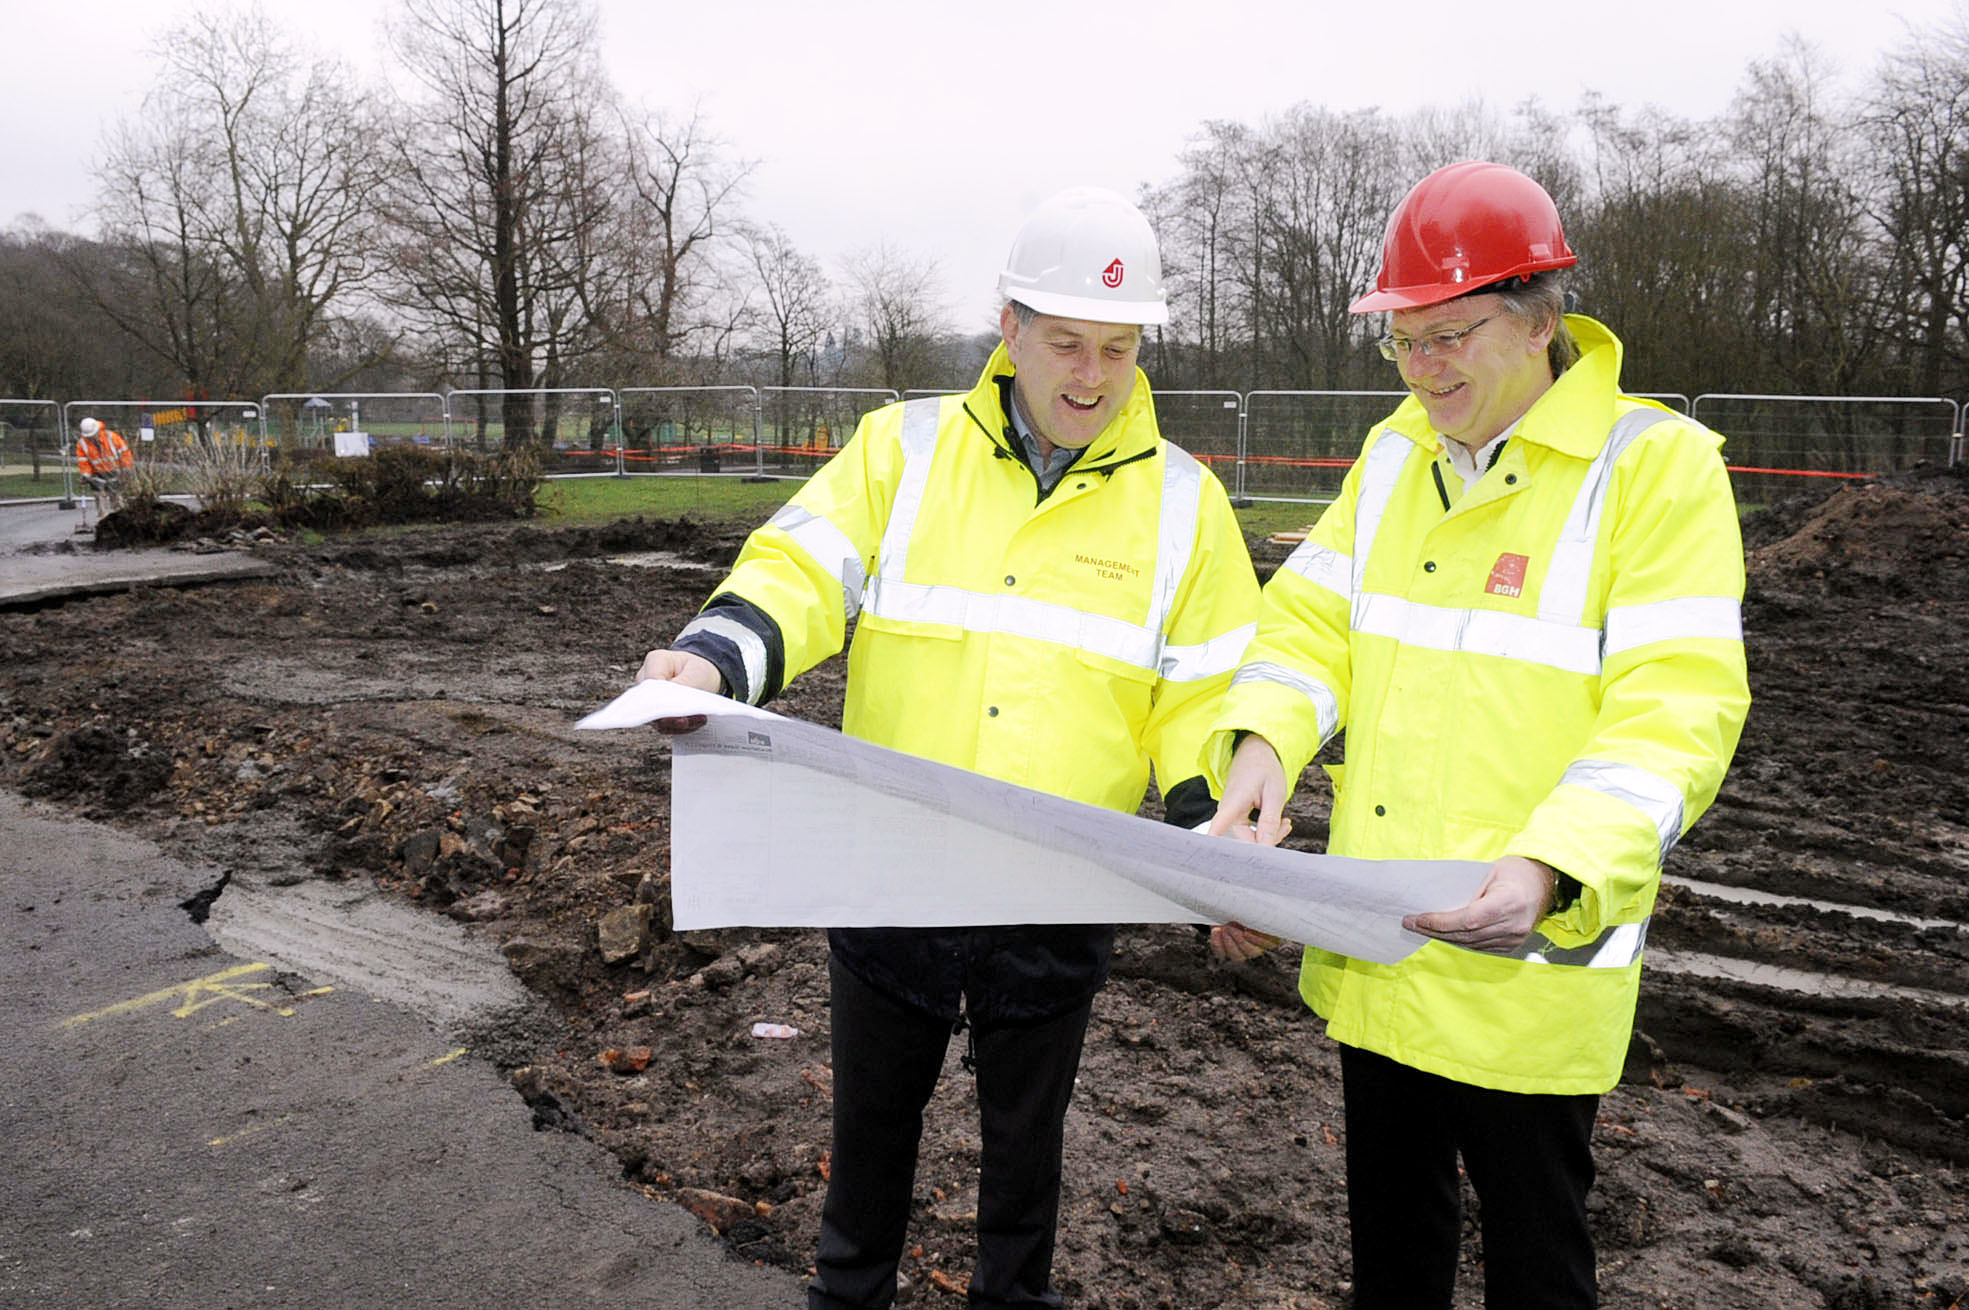 Work starts on £500,000 new cafe at Moss Bank Park